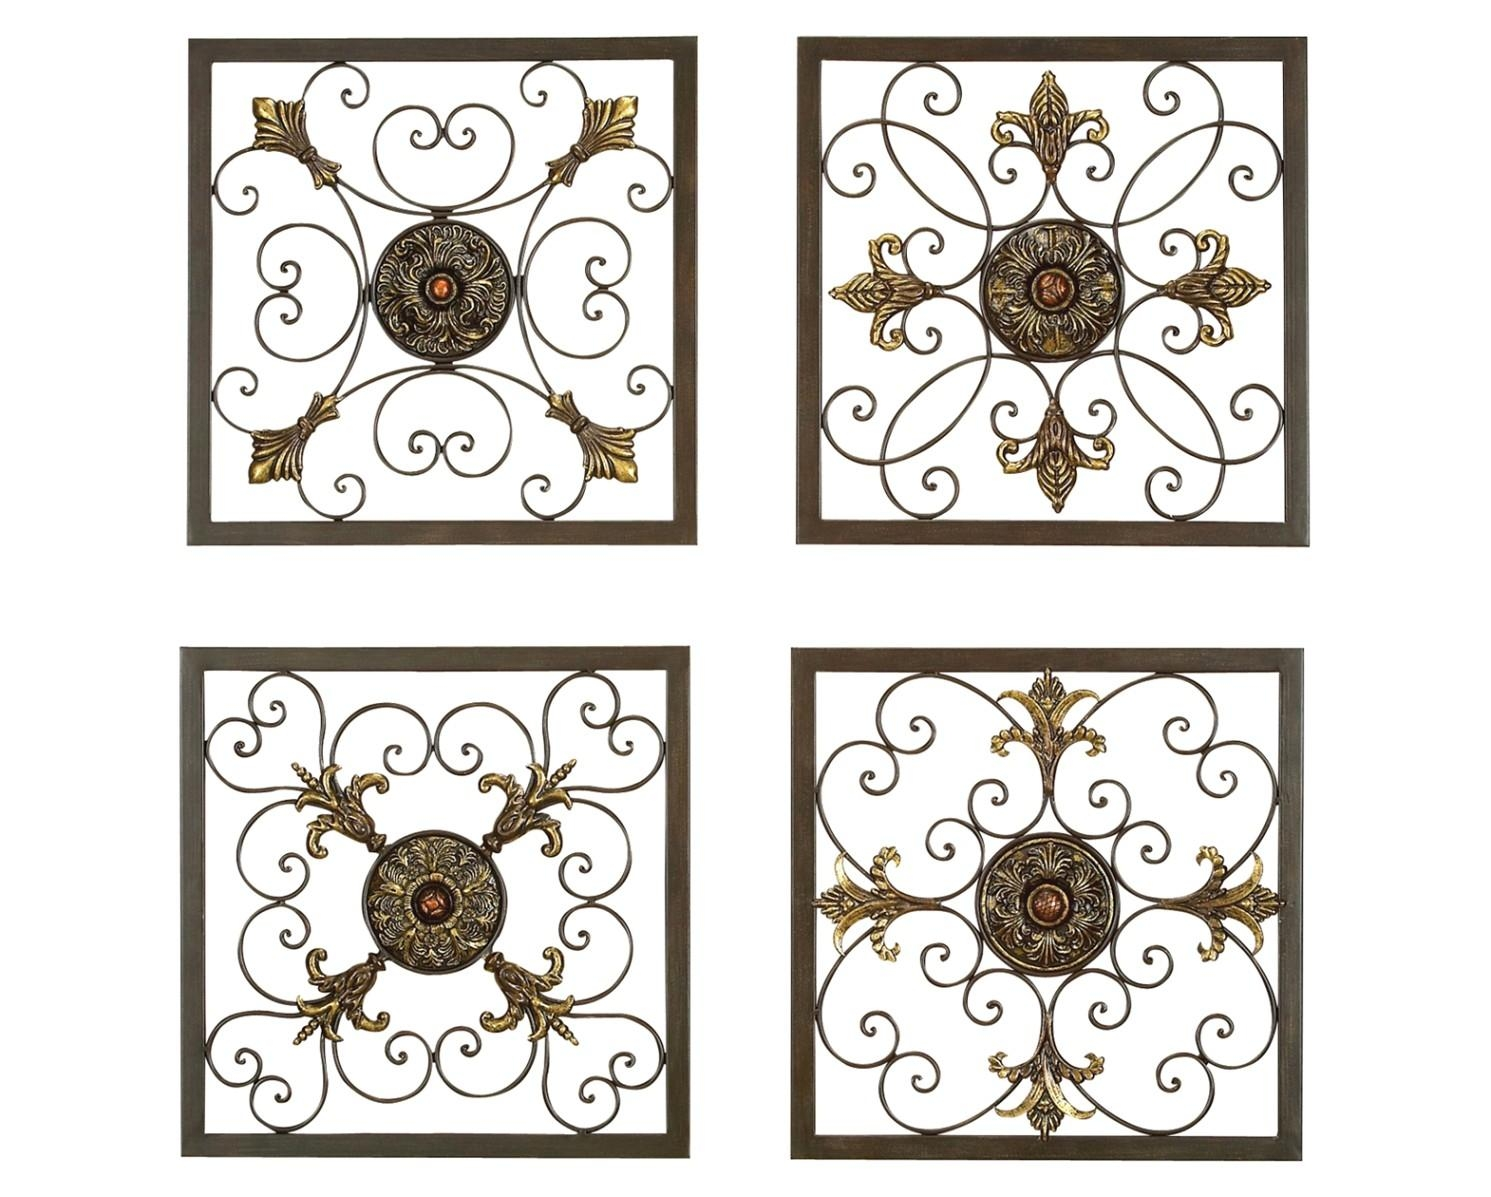 Wrought Iron Scroll Wall Decor Fresh Decor Home Decor With Wrought Intended For Iron Scroll Wall Art (View 17 of 20)